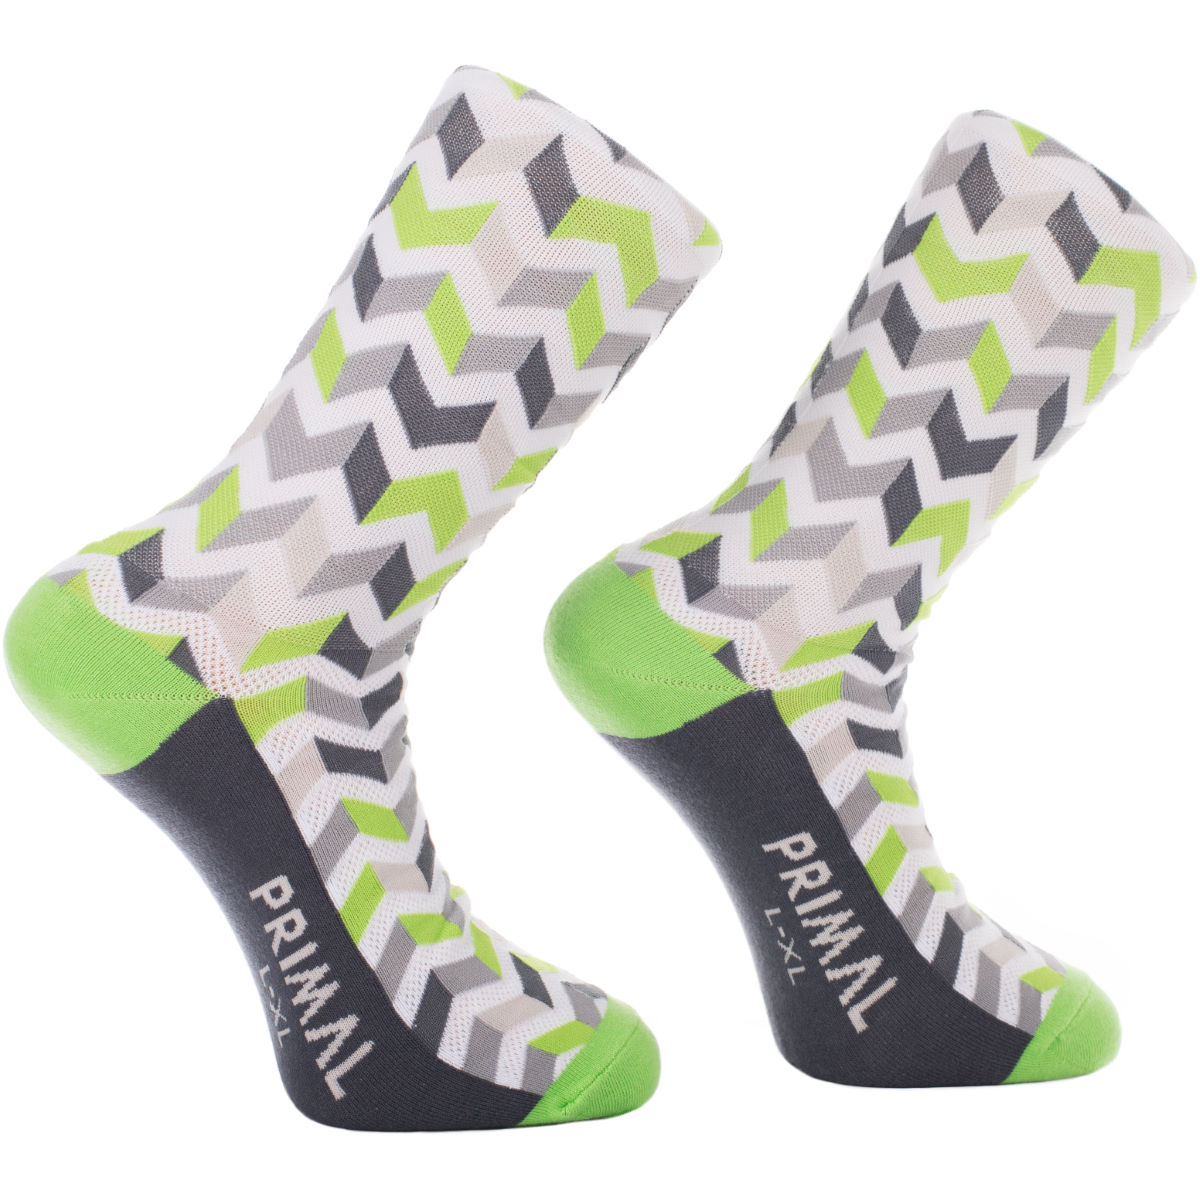 Image of Chaussettes Primal Basalt - S/M Multi | Chaussettes